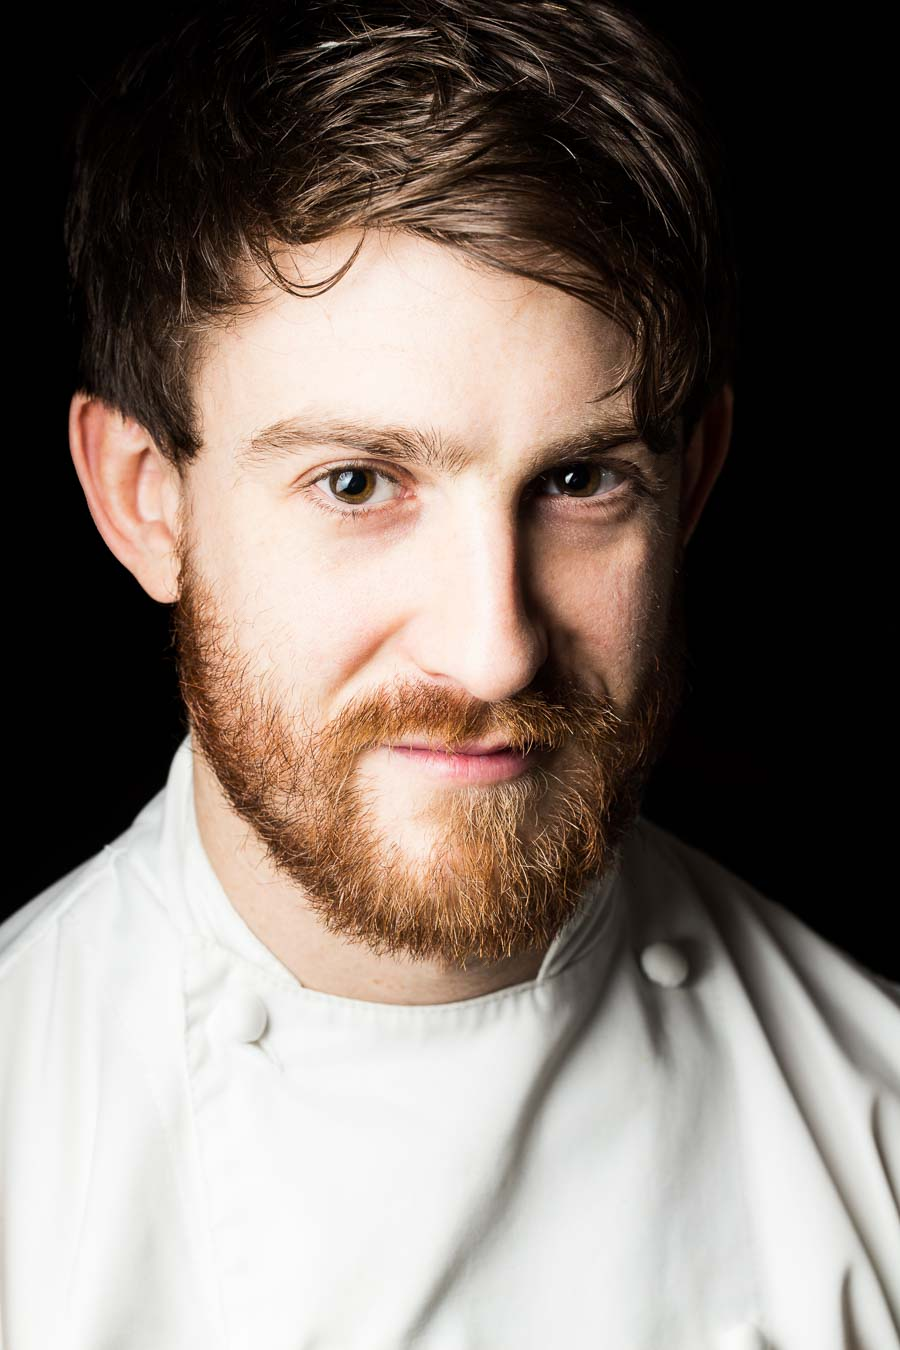 Head shot of chef Lee Westcott for Art Culinaire magazine. Chef is wearing chef whites, has a beard and the background is very dark